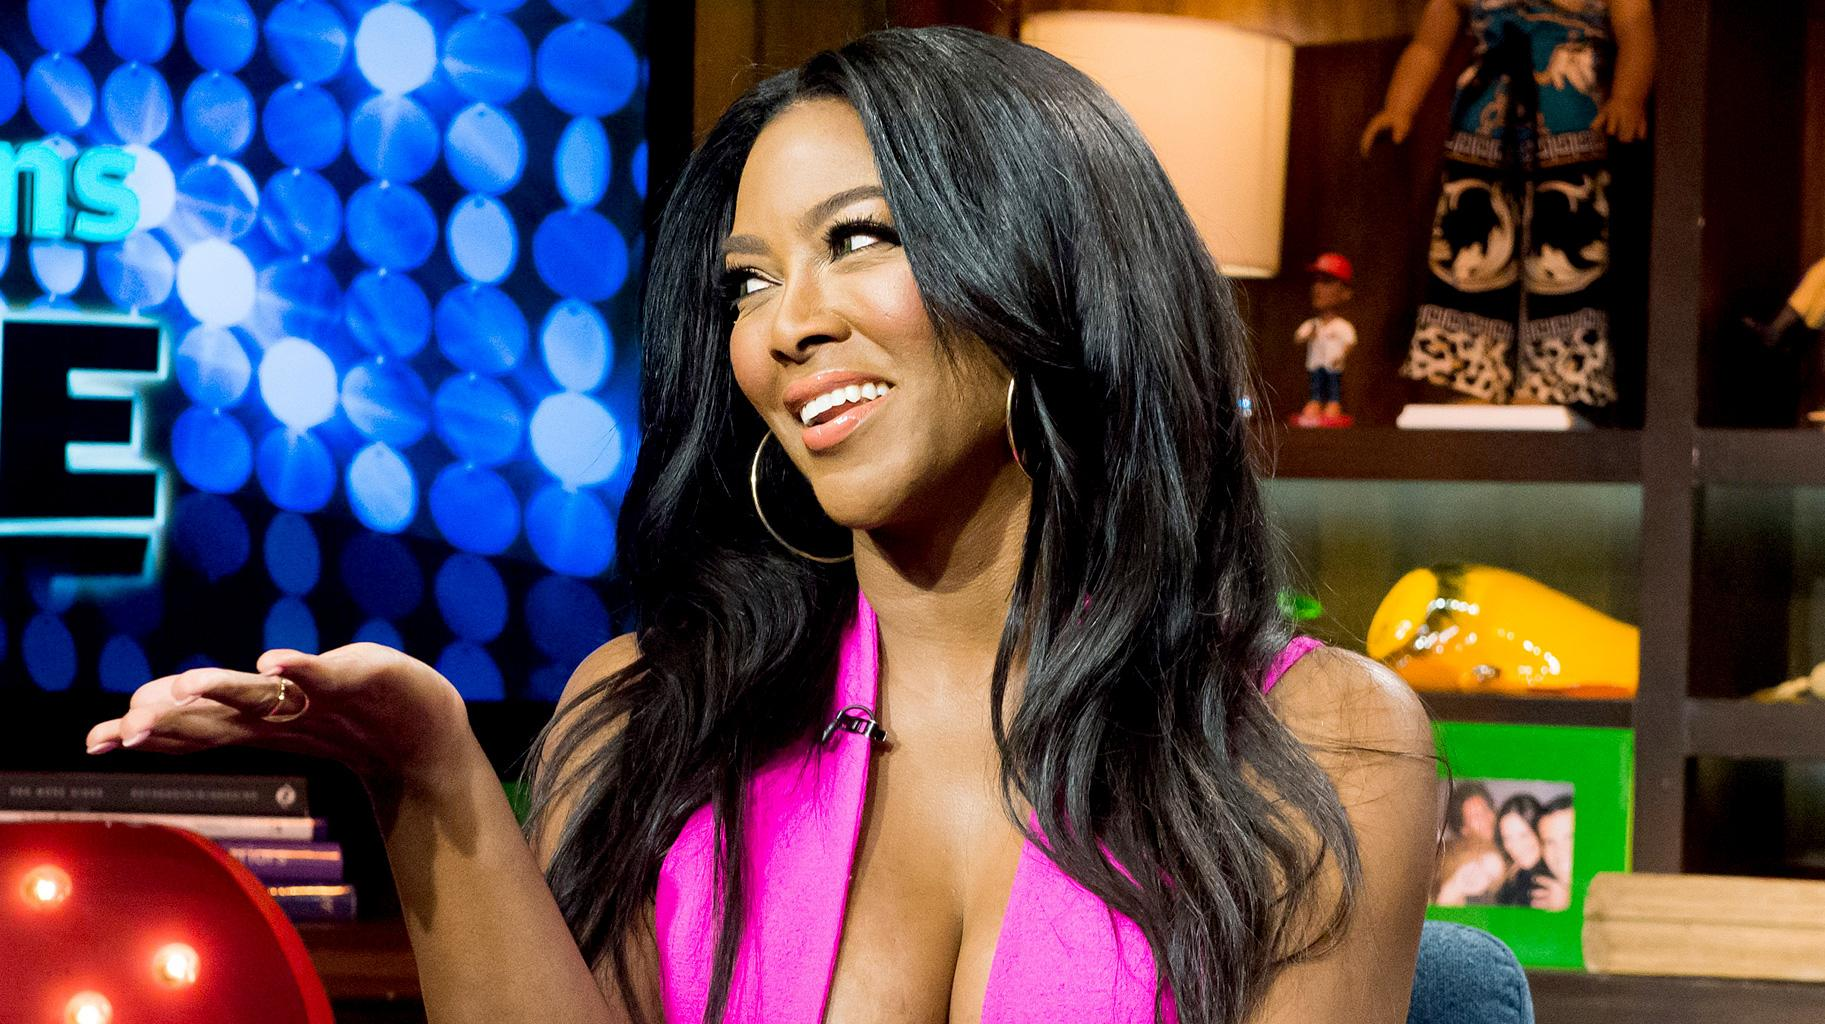 Kenya Moore's Husband Marc Daly Shut Down A Whole Business To Have A Private Romantic Valentine's Day With His Wife And Baby Girl - See The Stunning Photo